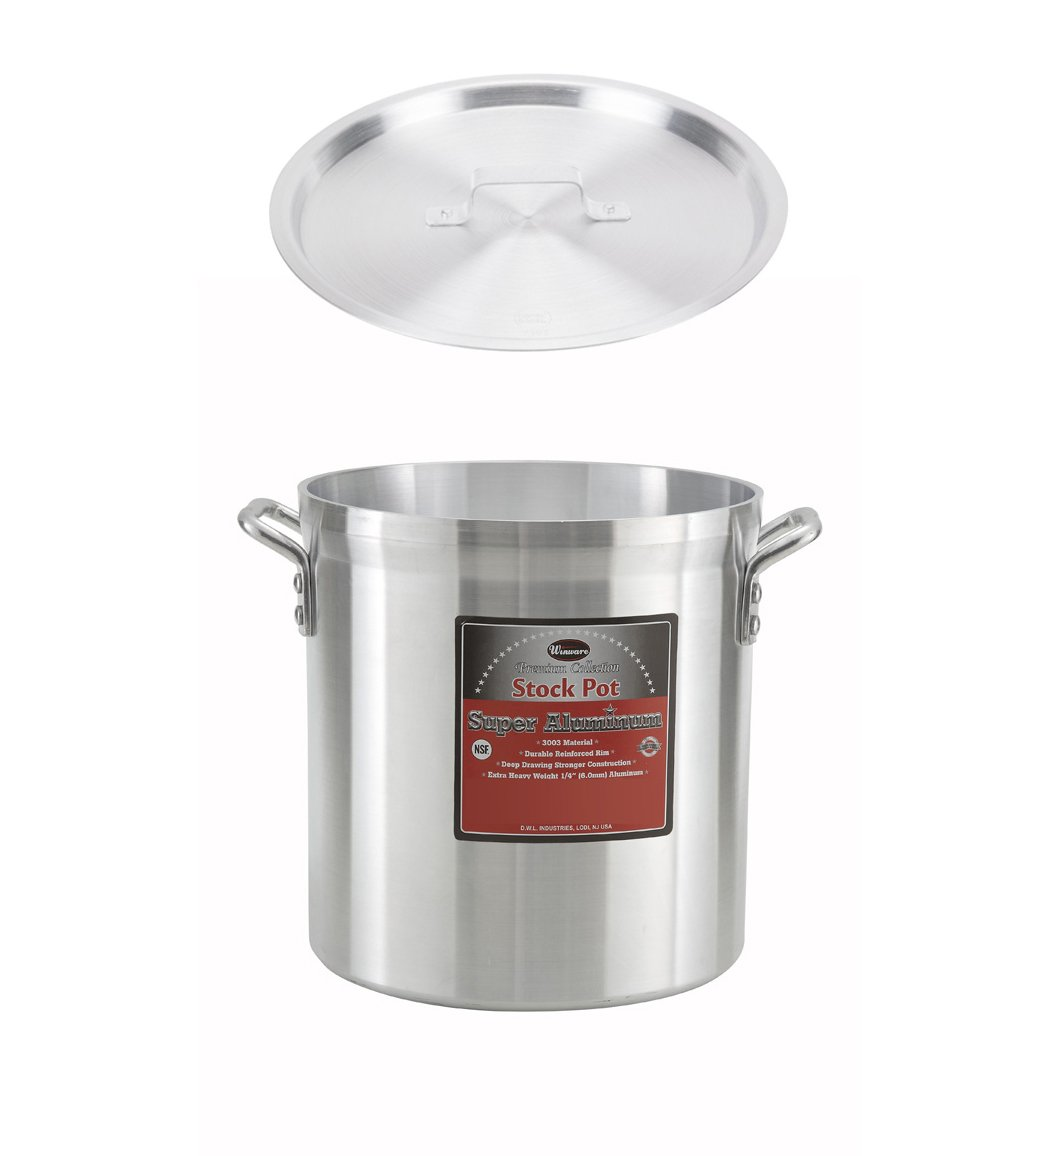 Winco AXHH-20, 20-Quart 12'' x 10-1/2'' Super Extra-Heavy 3003 Aluminum Professional Stock Pot with Cover, Commercial Grade Sauce Pot with Lid